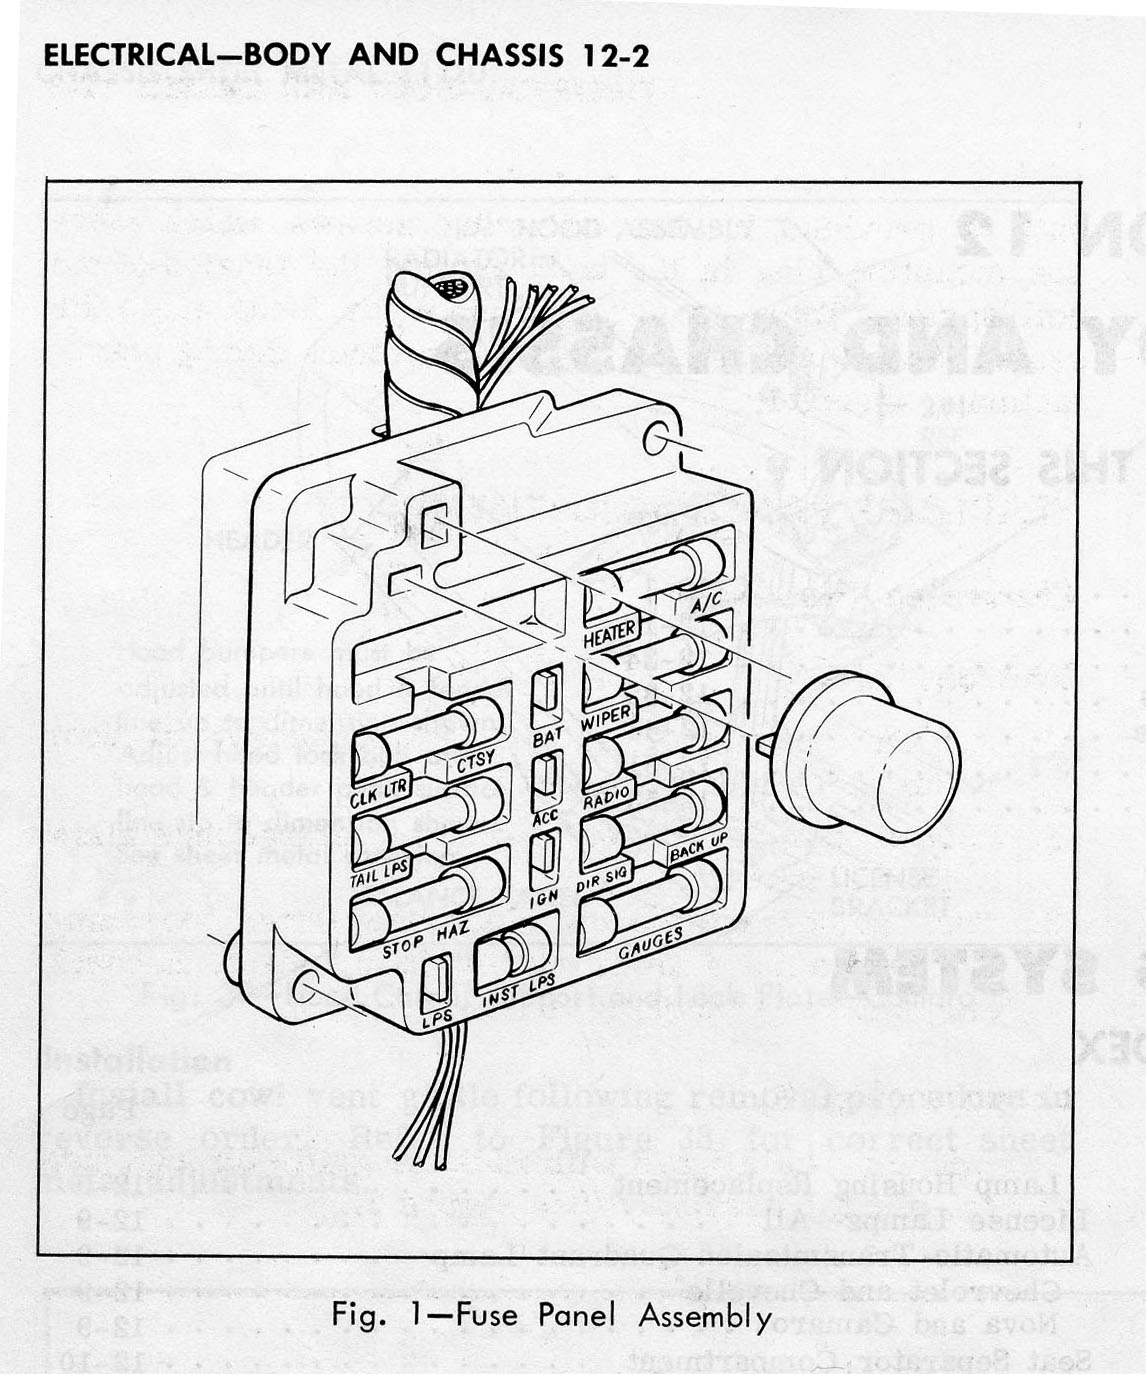 1978 corvette fuse panel diagram  1978  free engine image